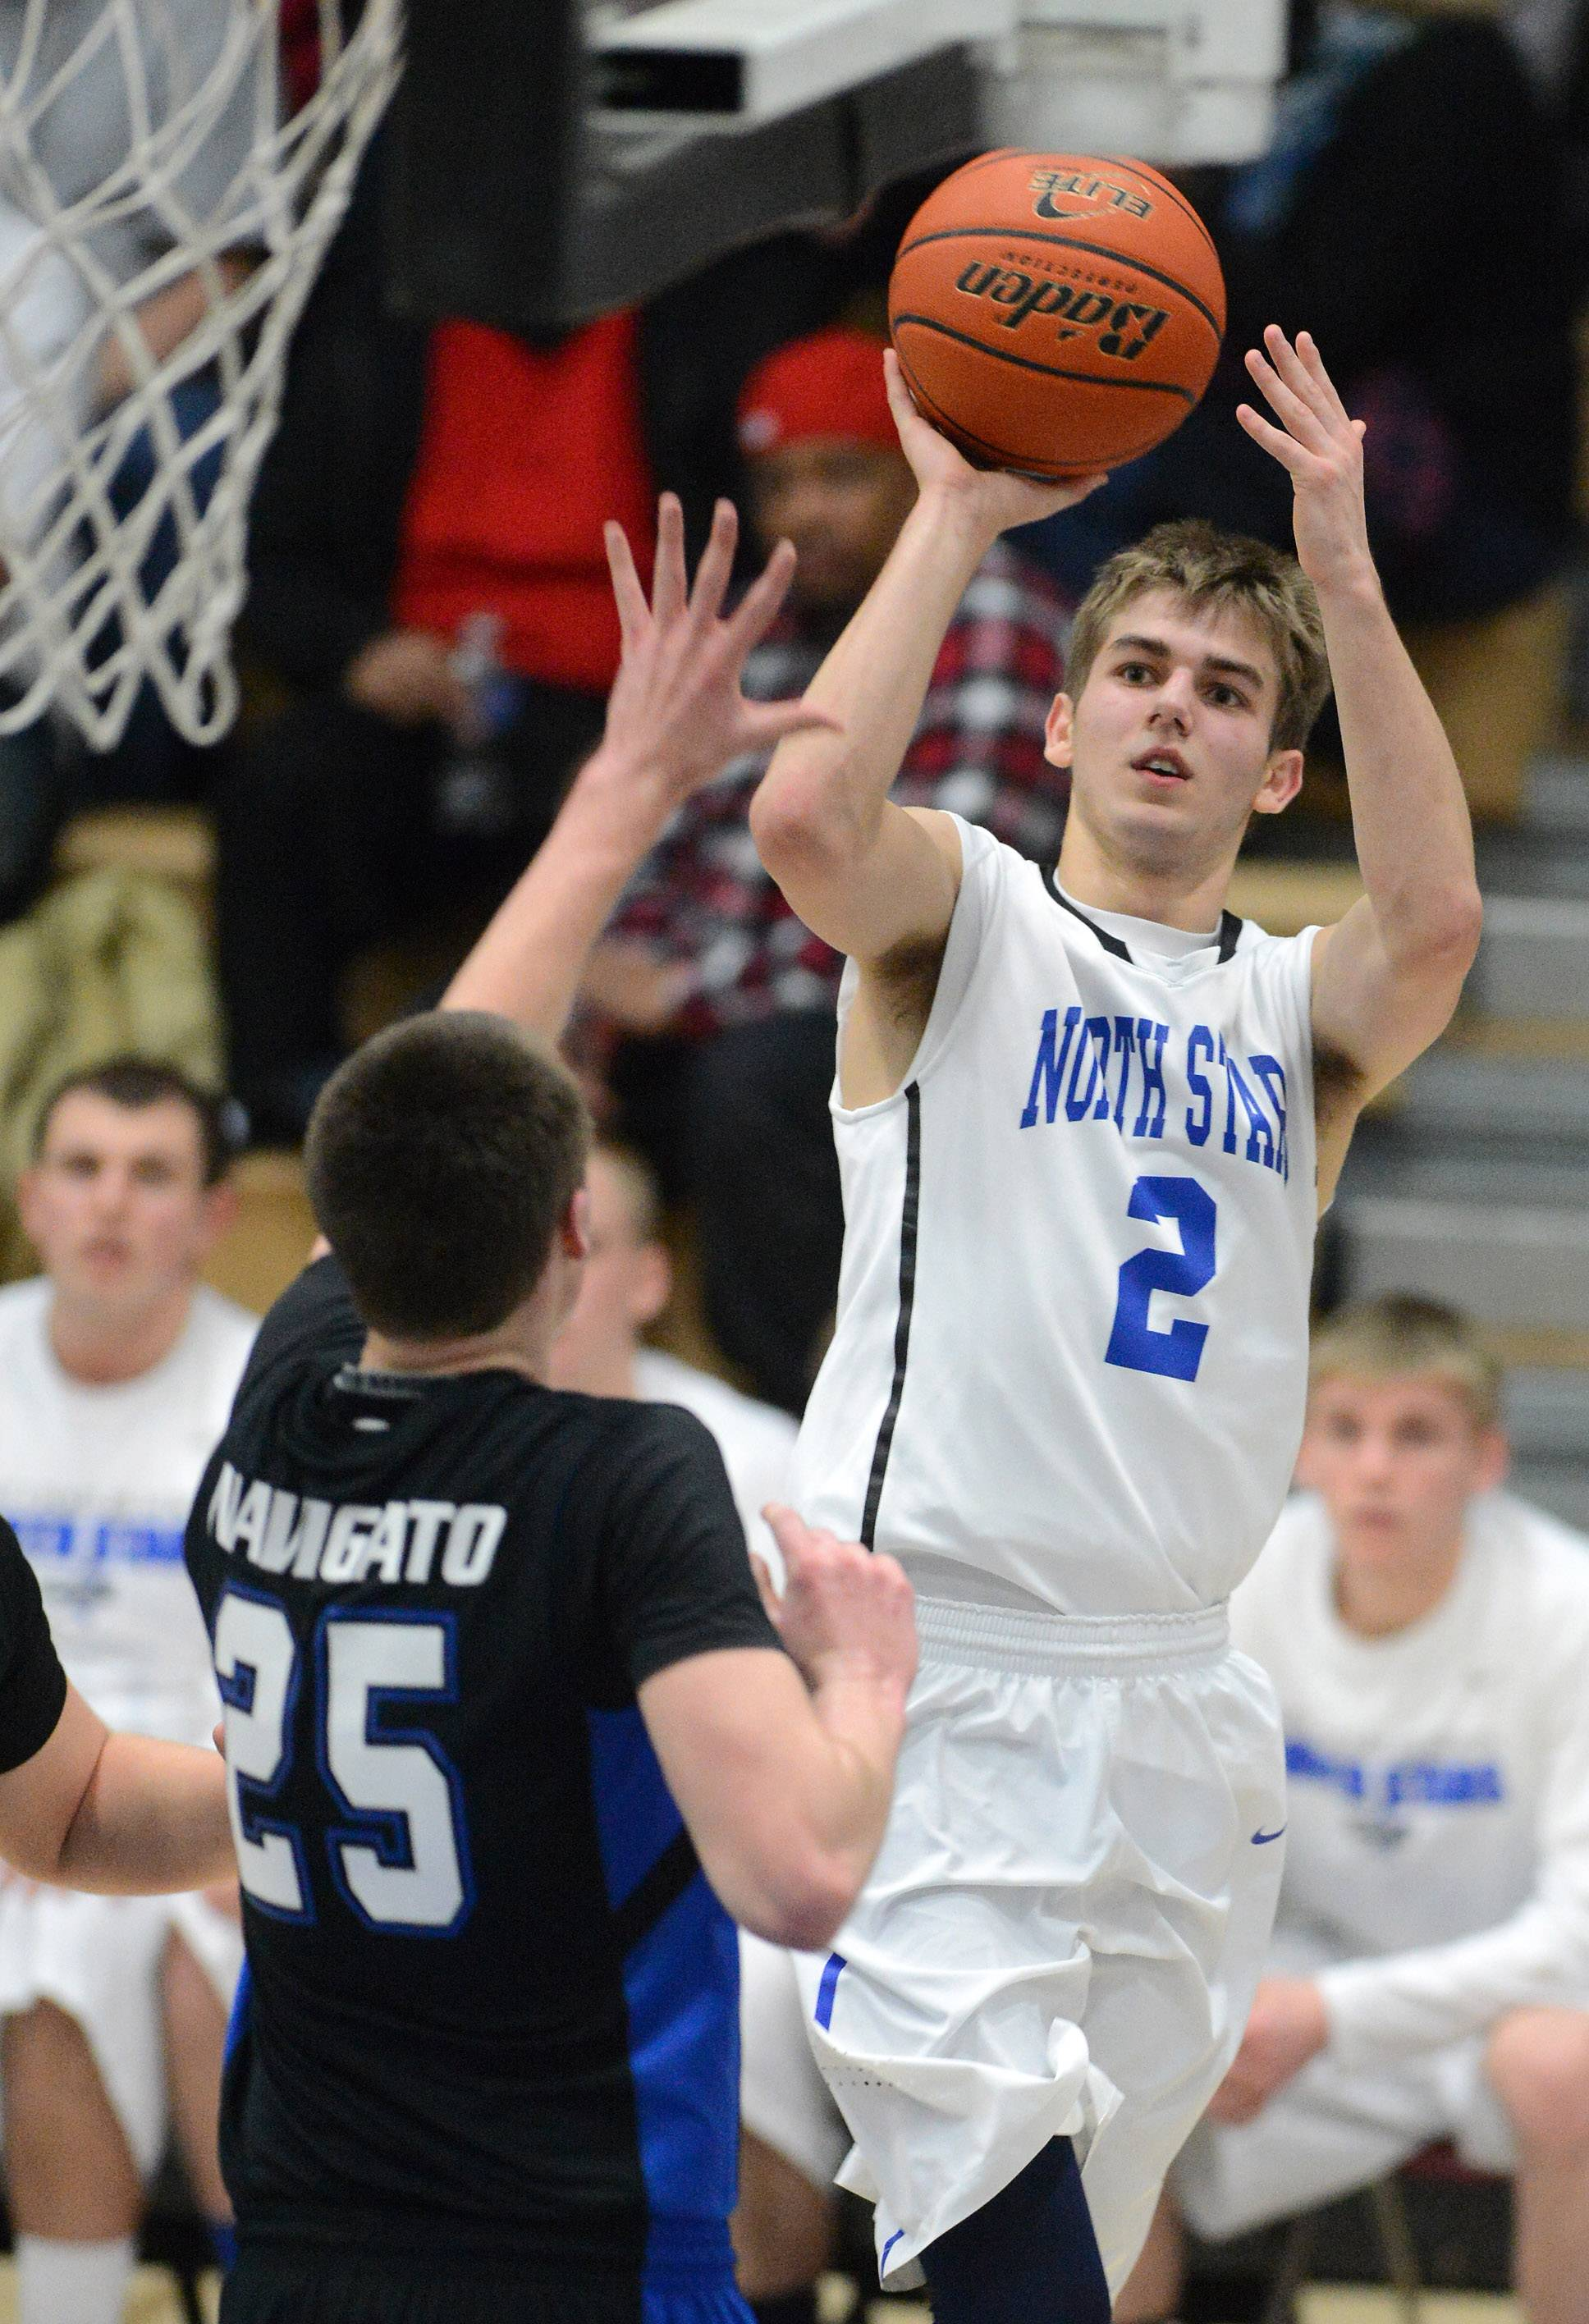 Rick West/rwest@dailyherald.comSt. Charles North's Jake Ludwig (2) shoots and scores over Geneva's Nate Navigato (25) during Friday's game in St. Charles.